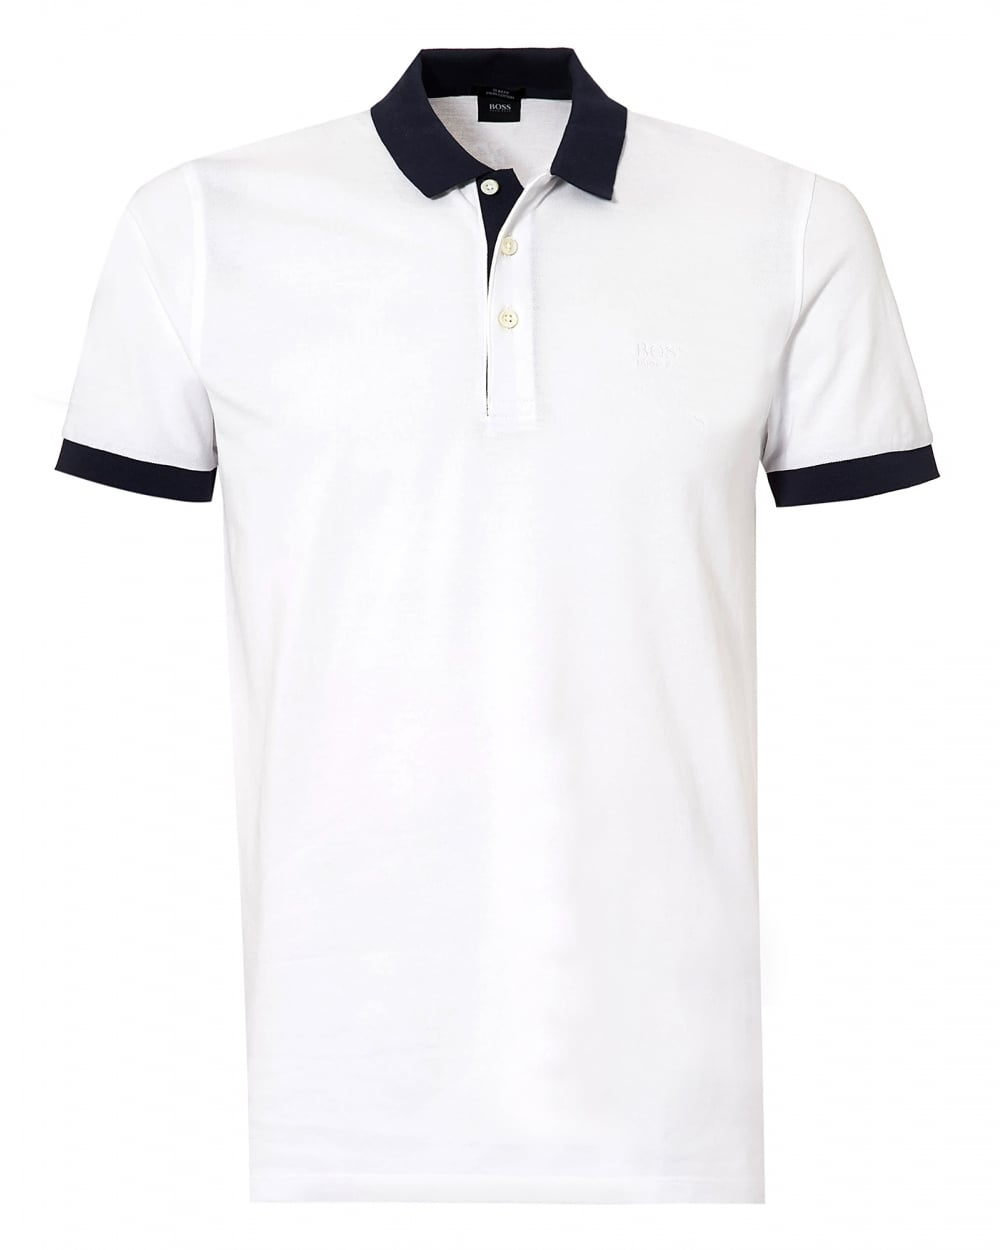 hugo boss black mens phillipson polo shirt white slim fit